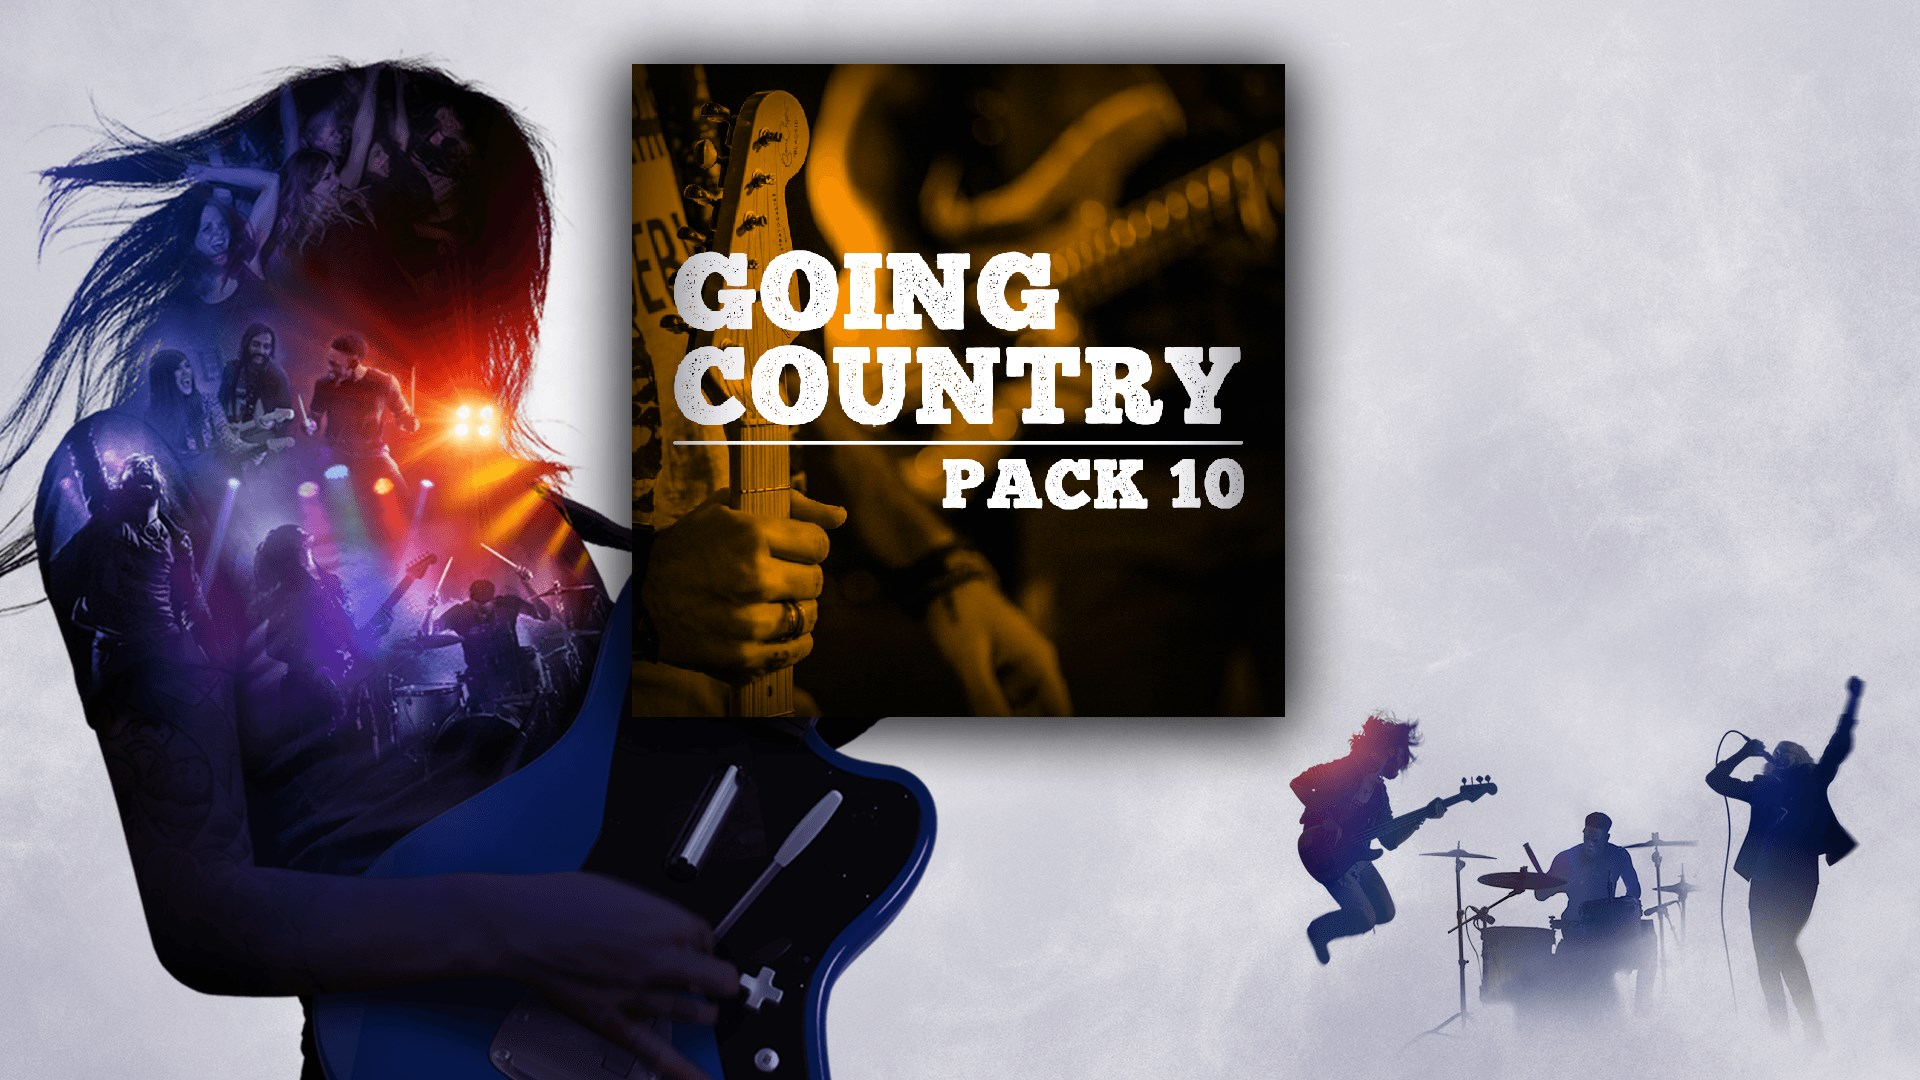 Going Country Pack 10